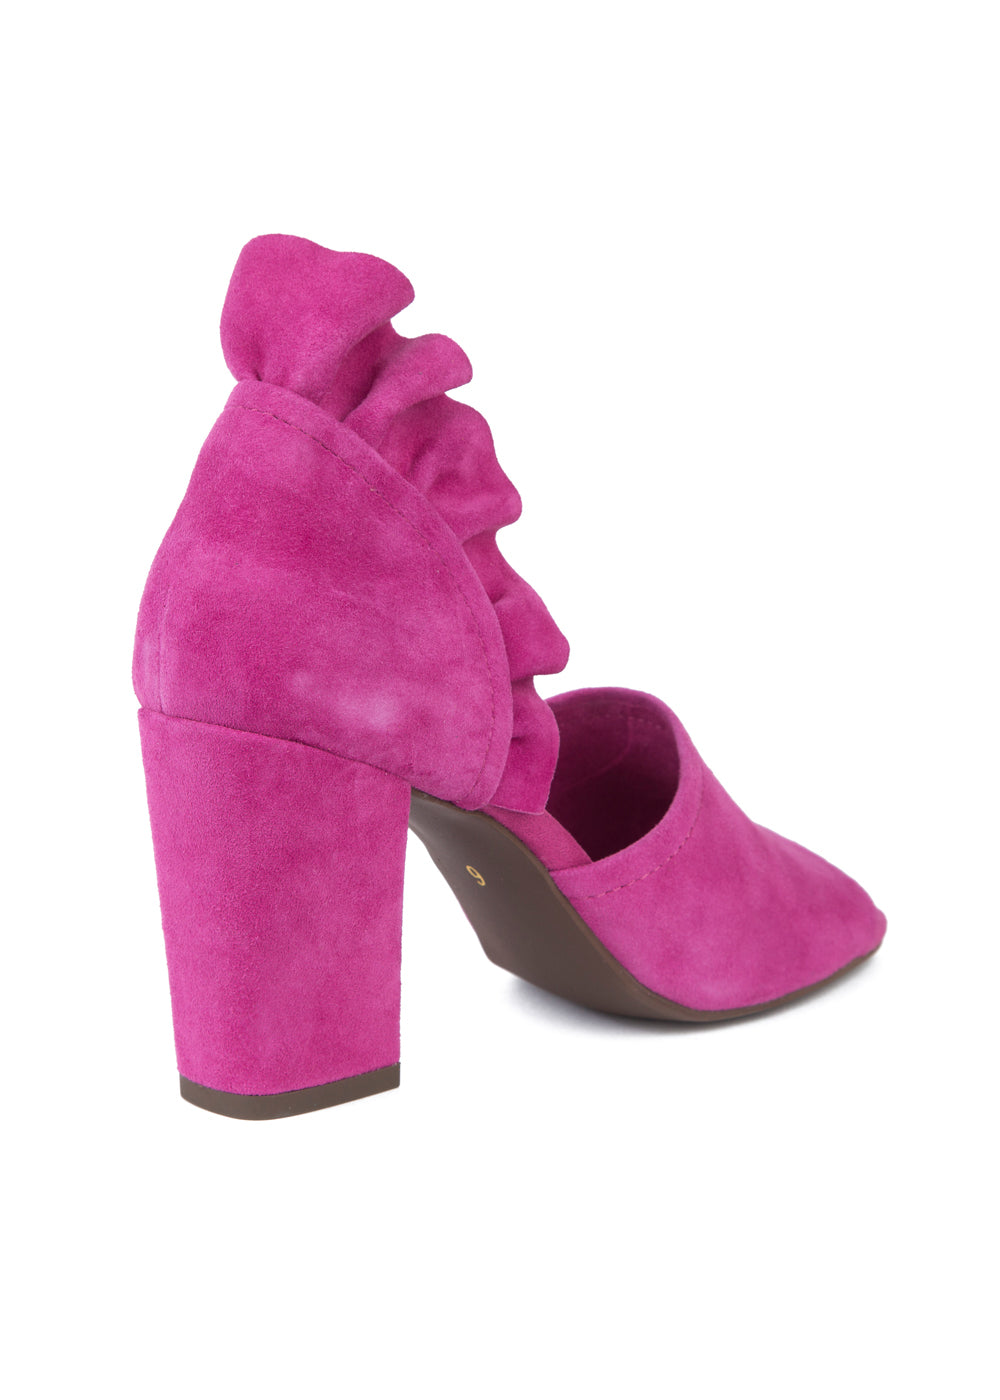 Tropical - Fuschia Suede - cara cara